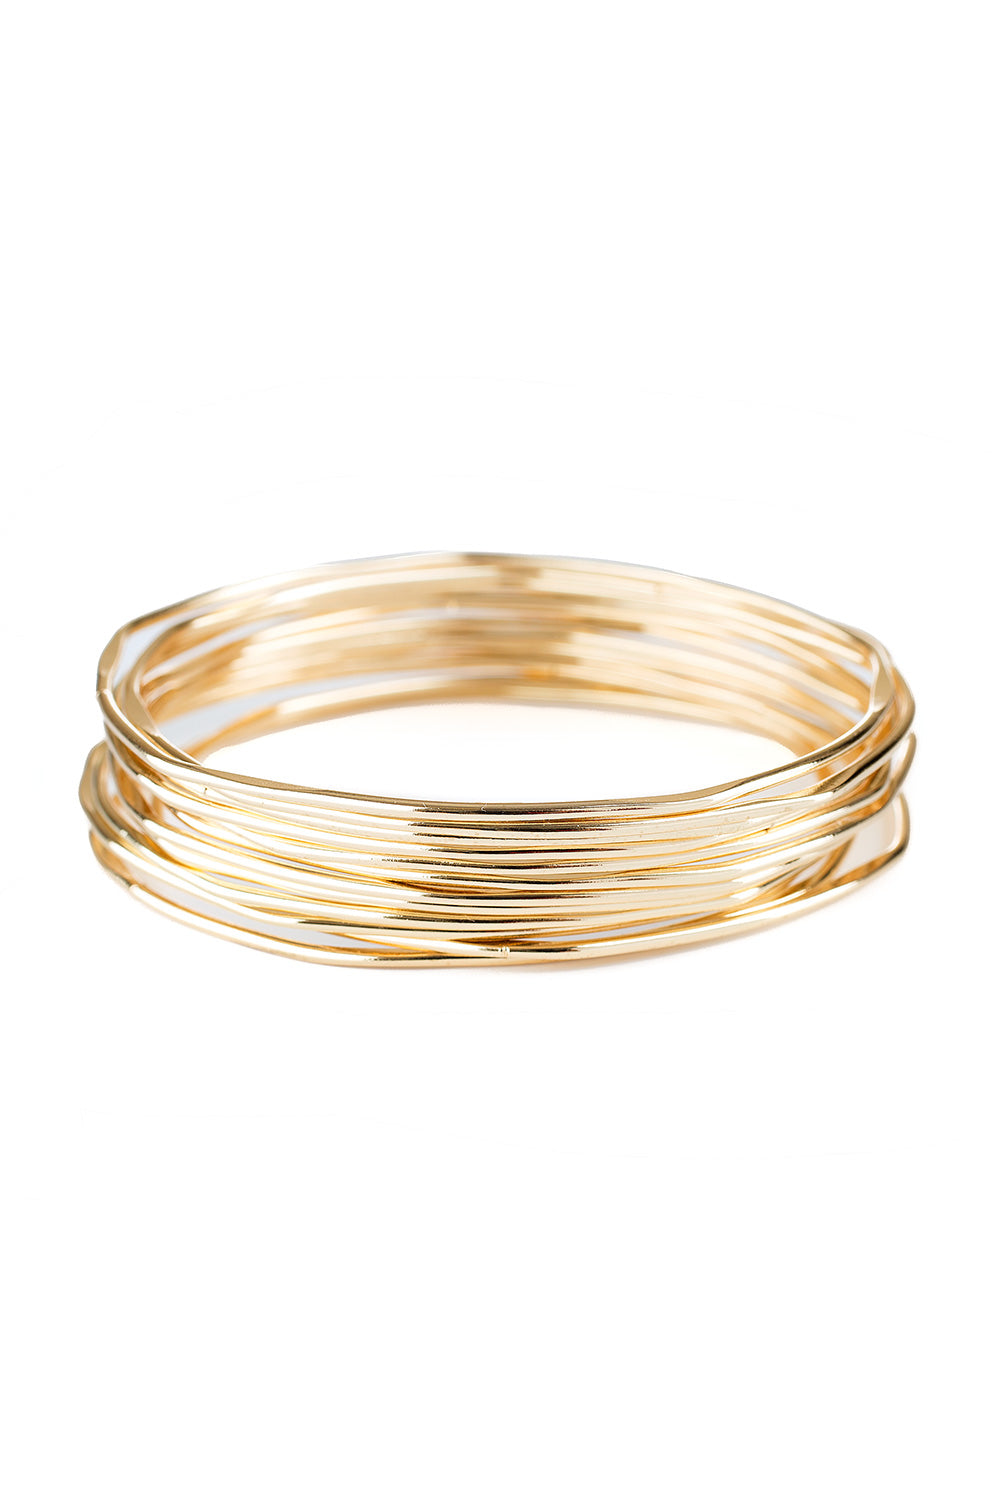 Type 1 Bent Bangles Bracelet Set